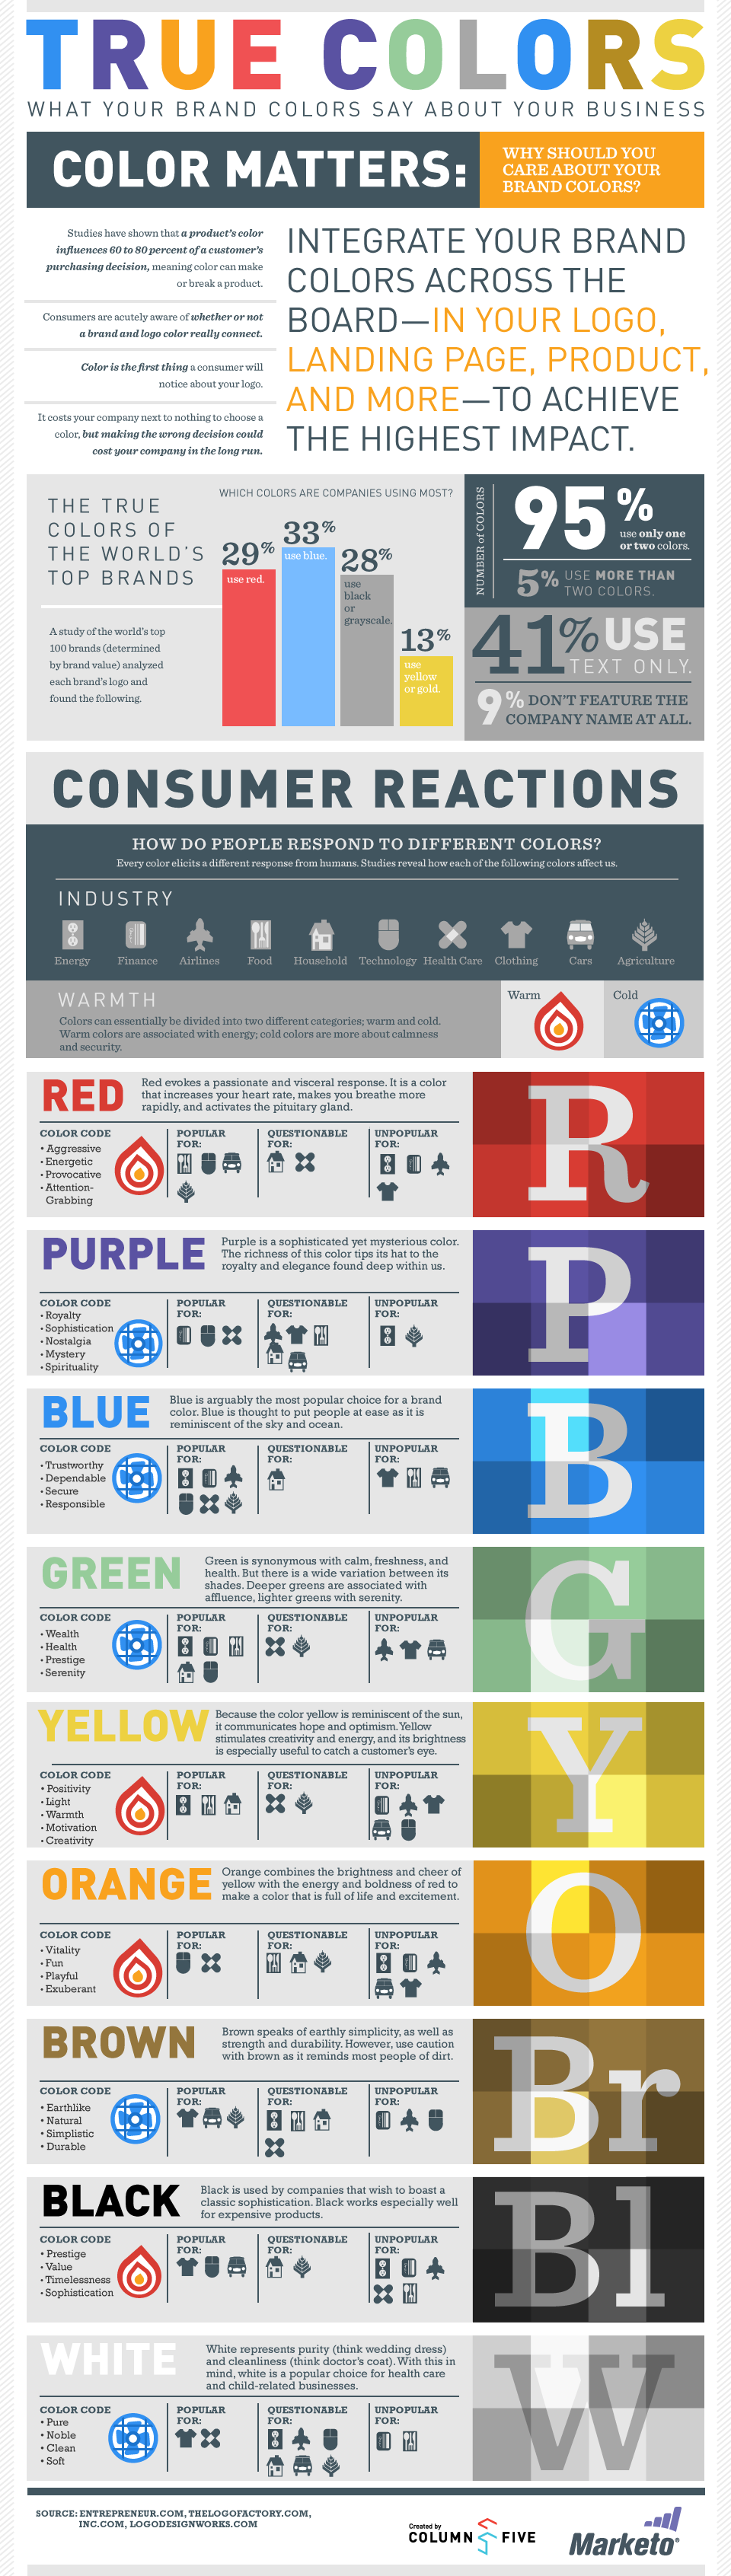 The Essential Truth of Color: How it Defines Perceptions of Your Brand and Business - Infographic